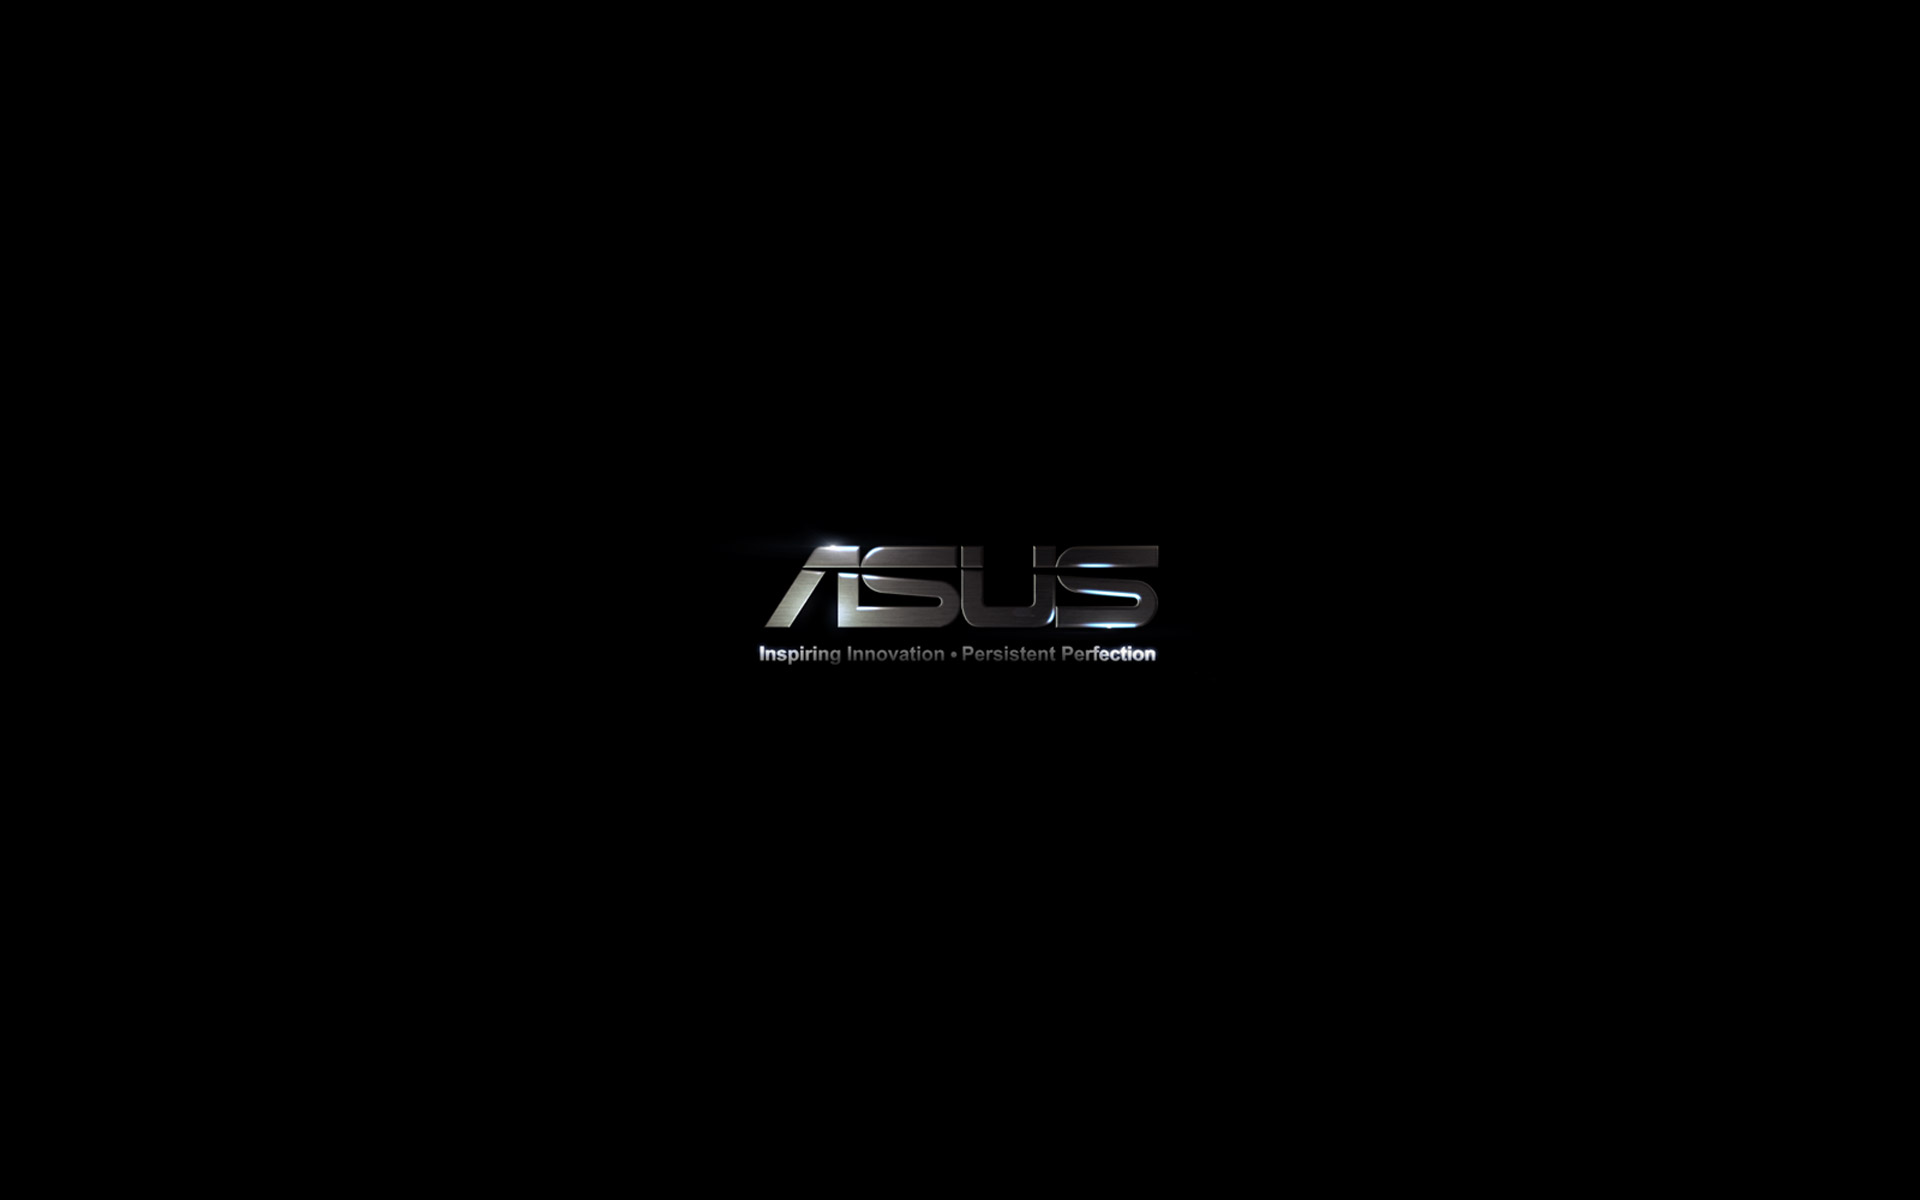 Asus Wallpaper Full Hd Wallpapersafari